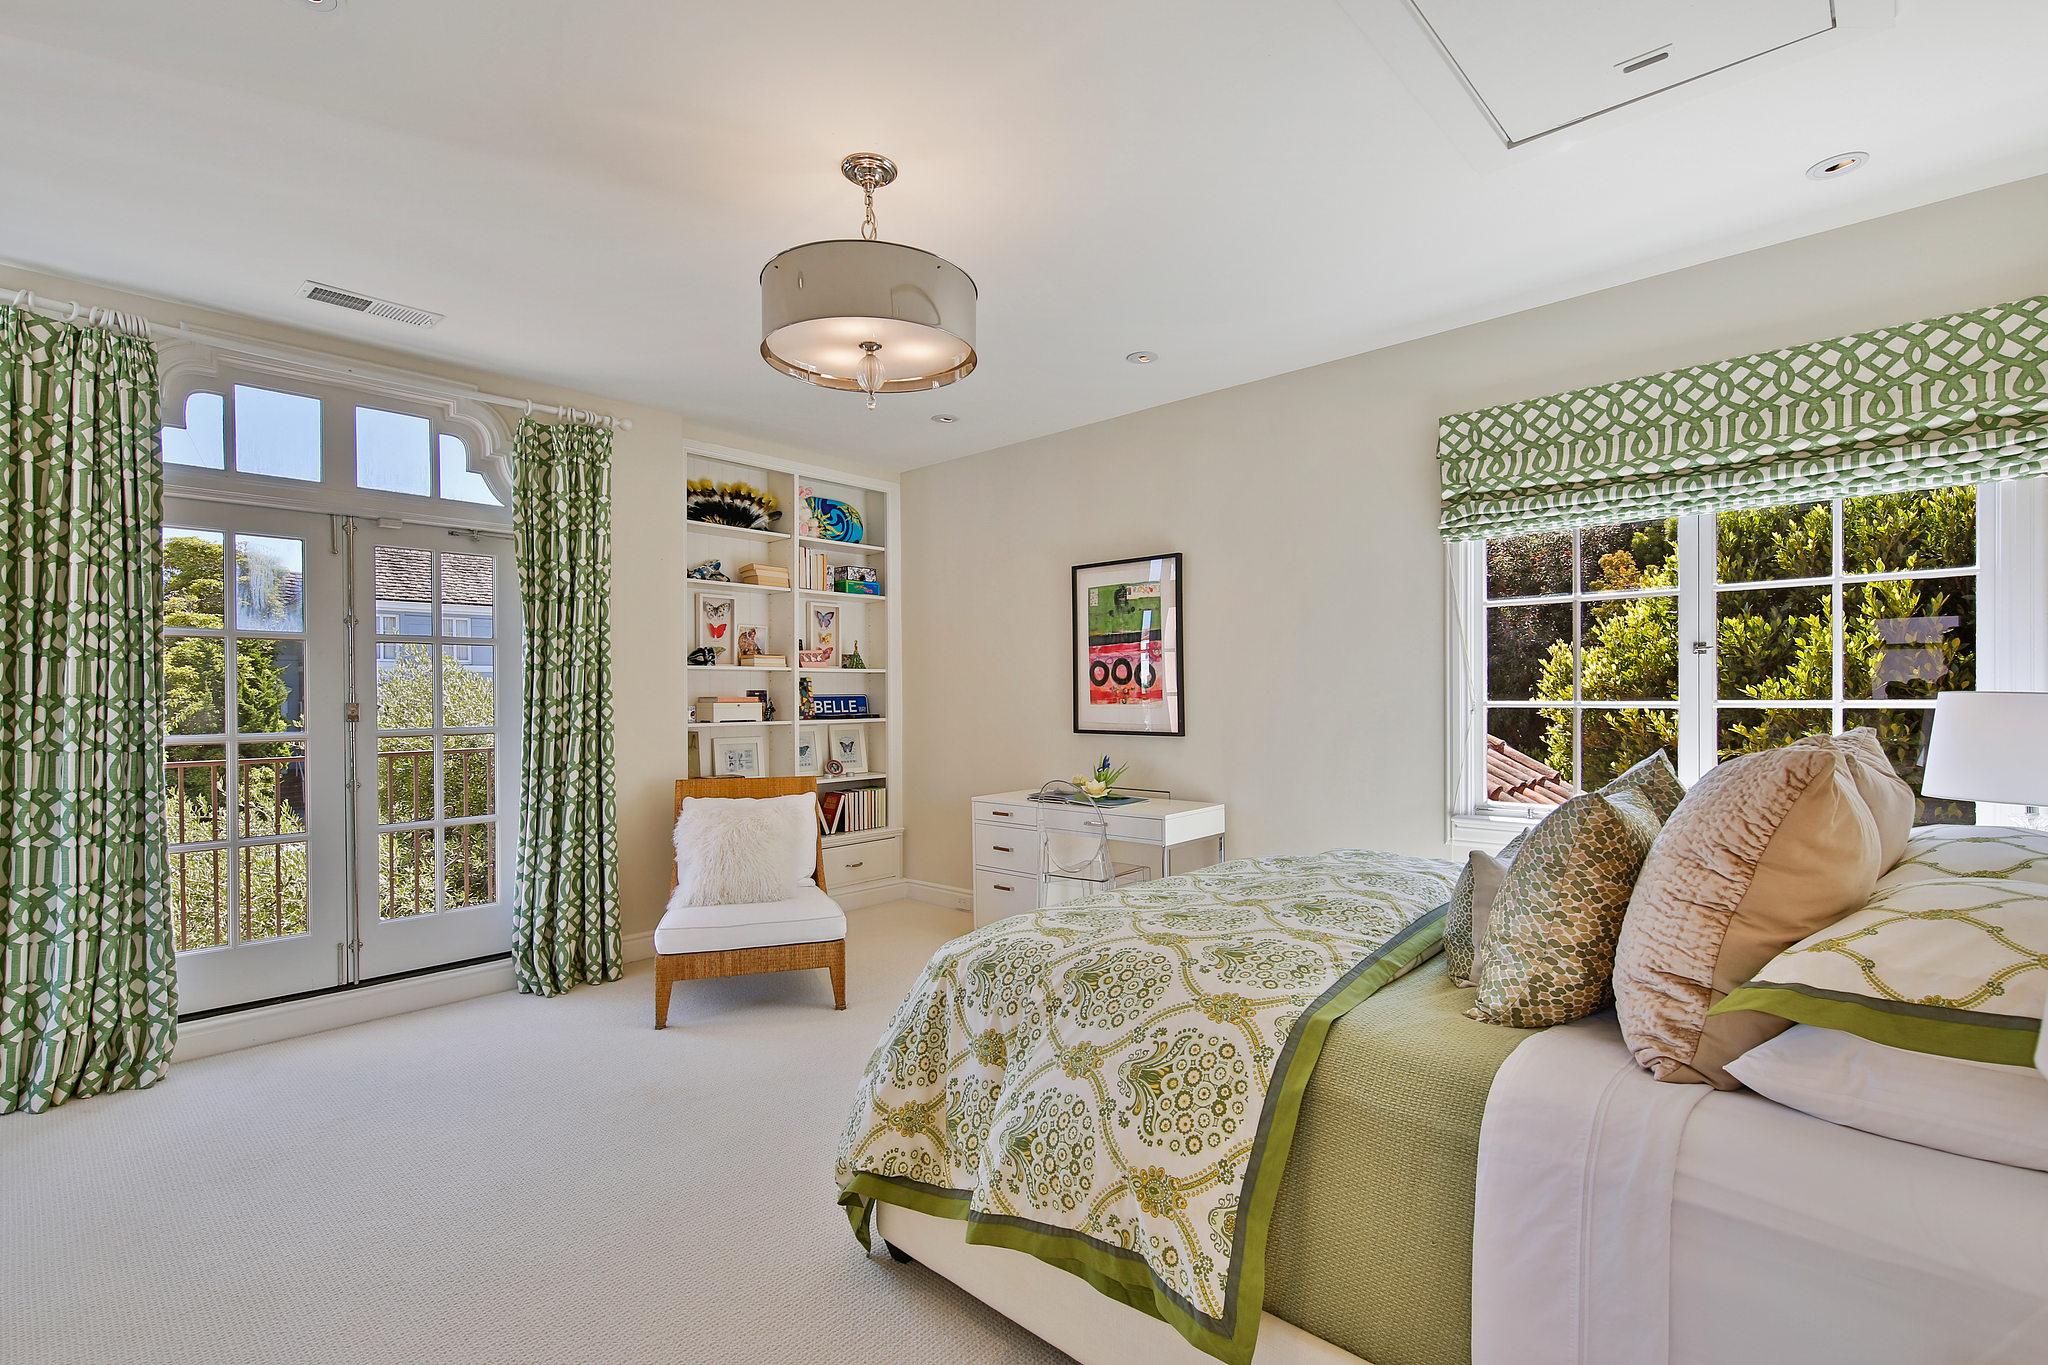 The bedrooms overlook the oversized, lush property as well as the sea beyond.